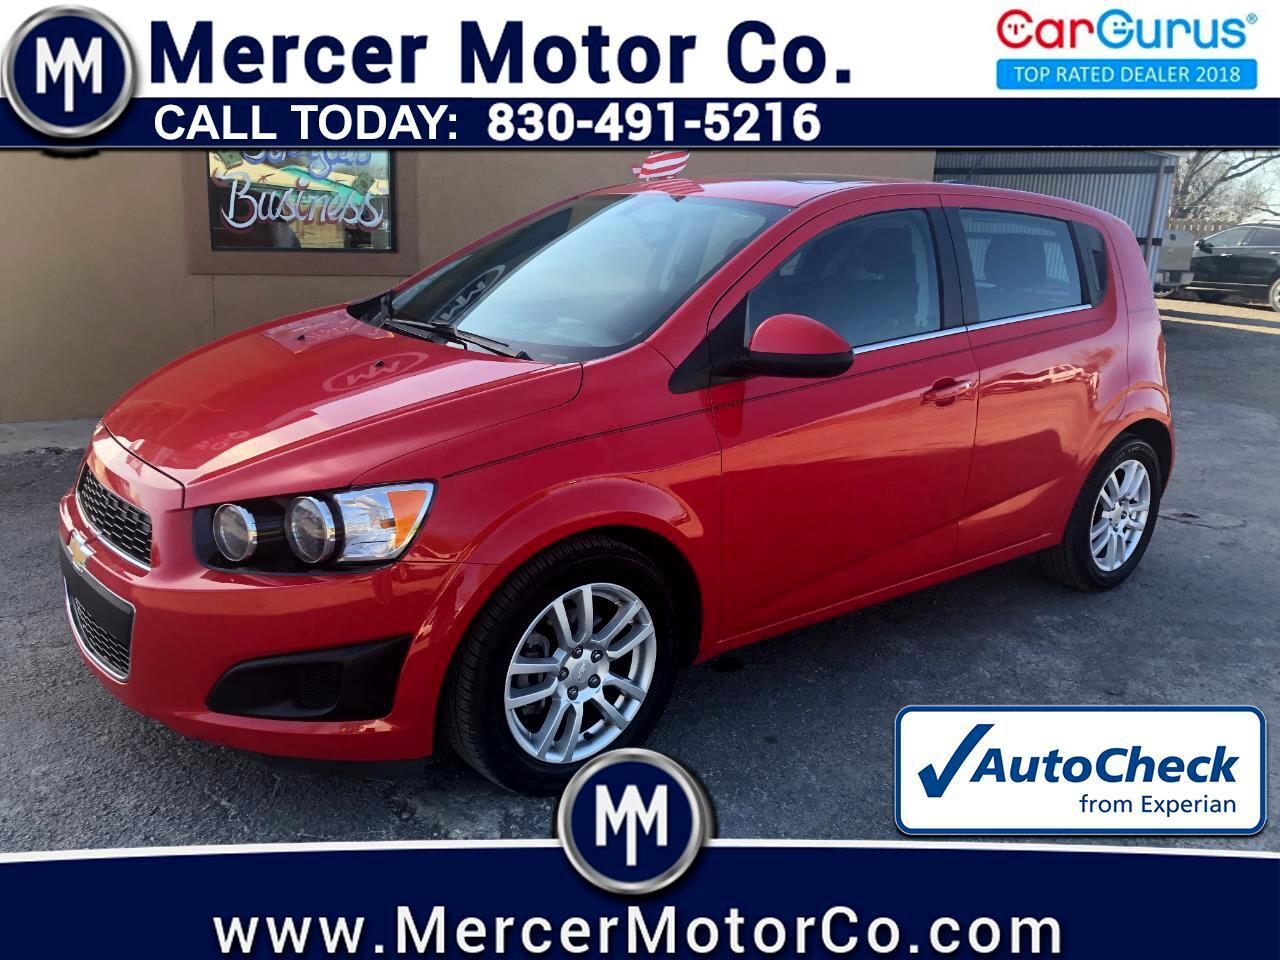 Chevrolet Sonic 5dr HB Manual LT 2015